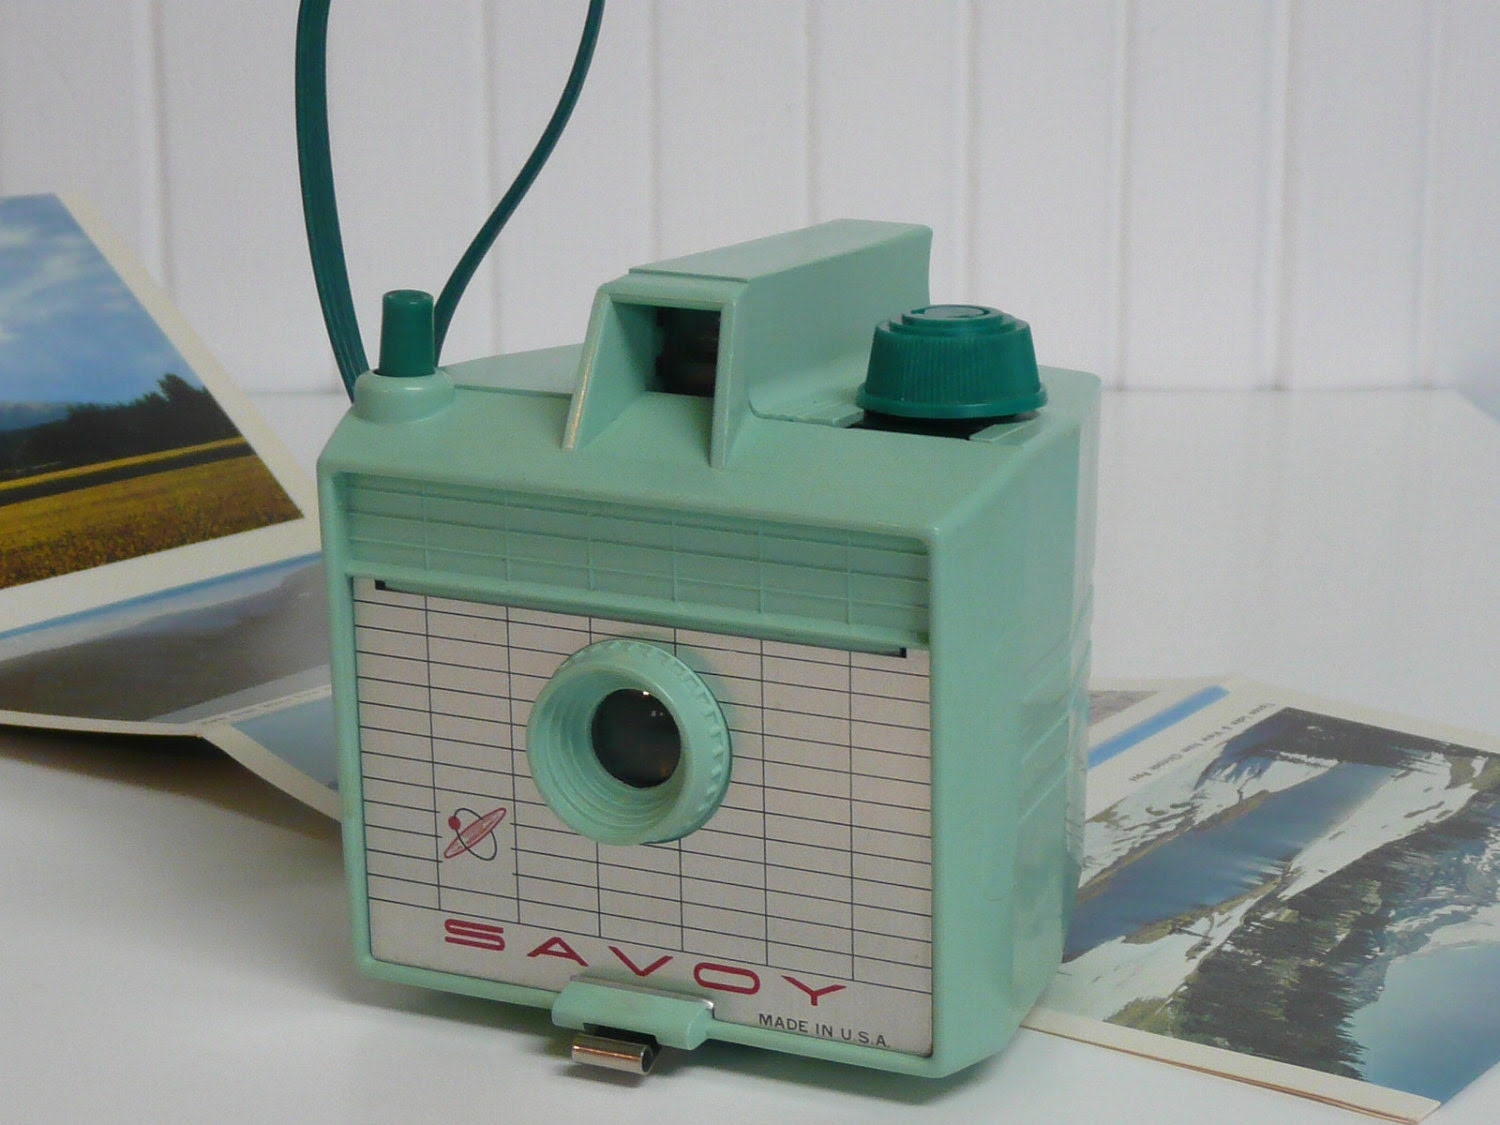 1960s Mint Green Imperial Savoy Bakelite Box Camera, Collectible - Vintage Travel Trailer and Home Decor